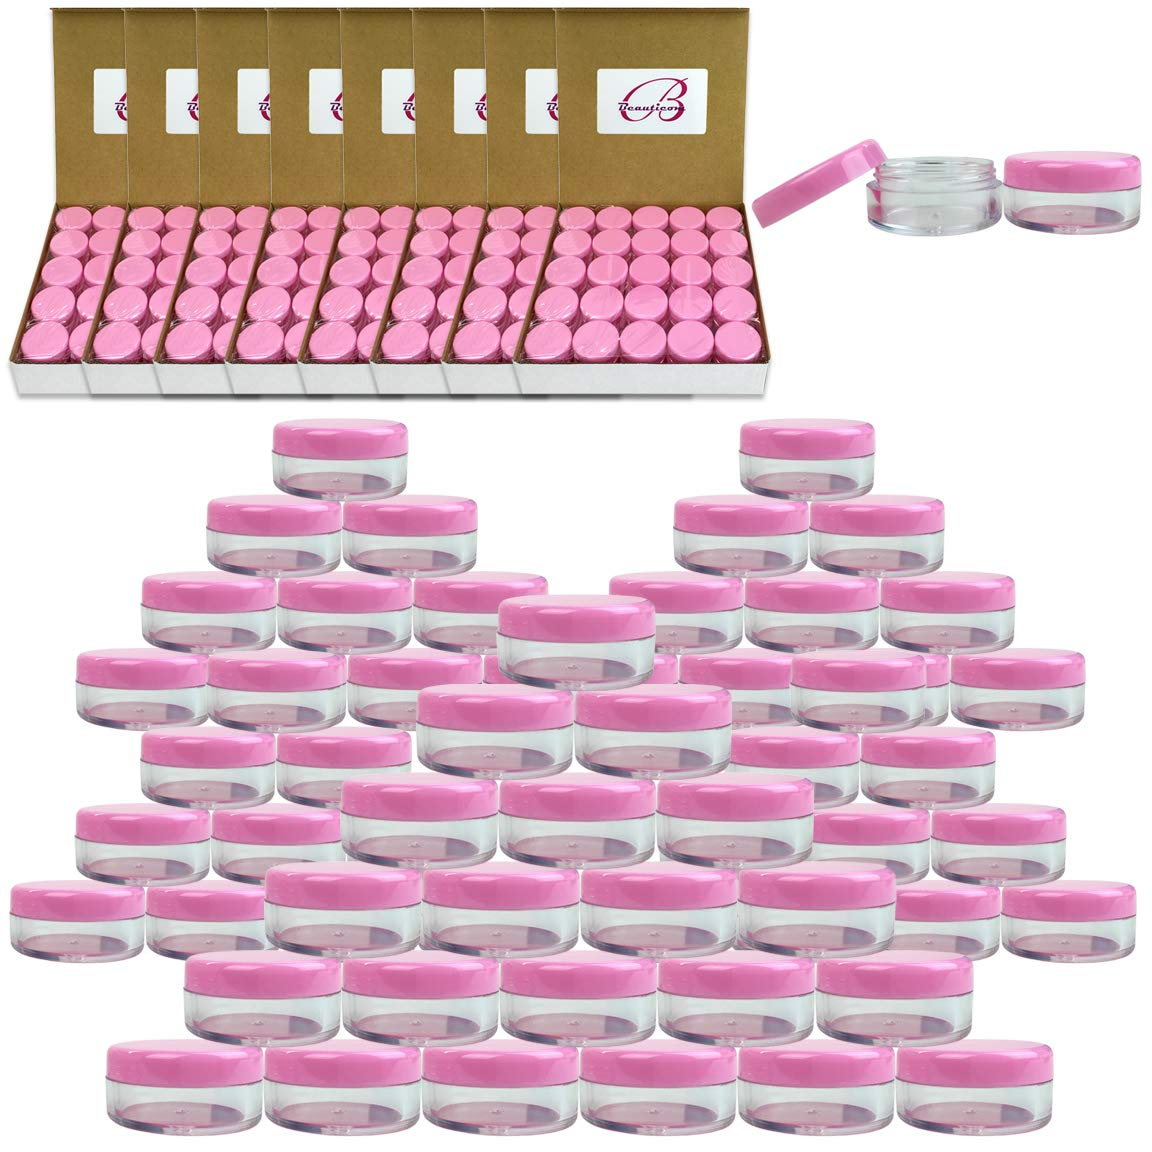 (Quantity: 1000 Pcs) Beauticom 5G/5ML Round Clear Jars with Pink Lids for Small Jewelry, Holding/Mixing Paints, Art Accessories and Other Craft Supplies - BPA Free